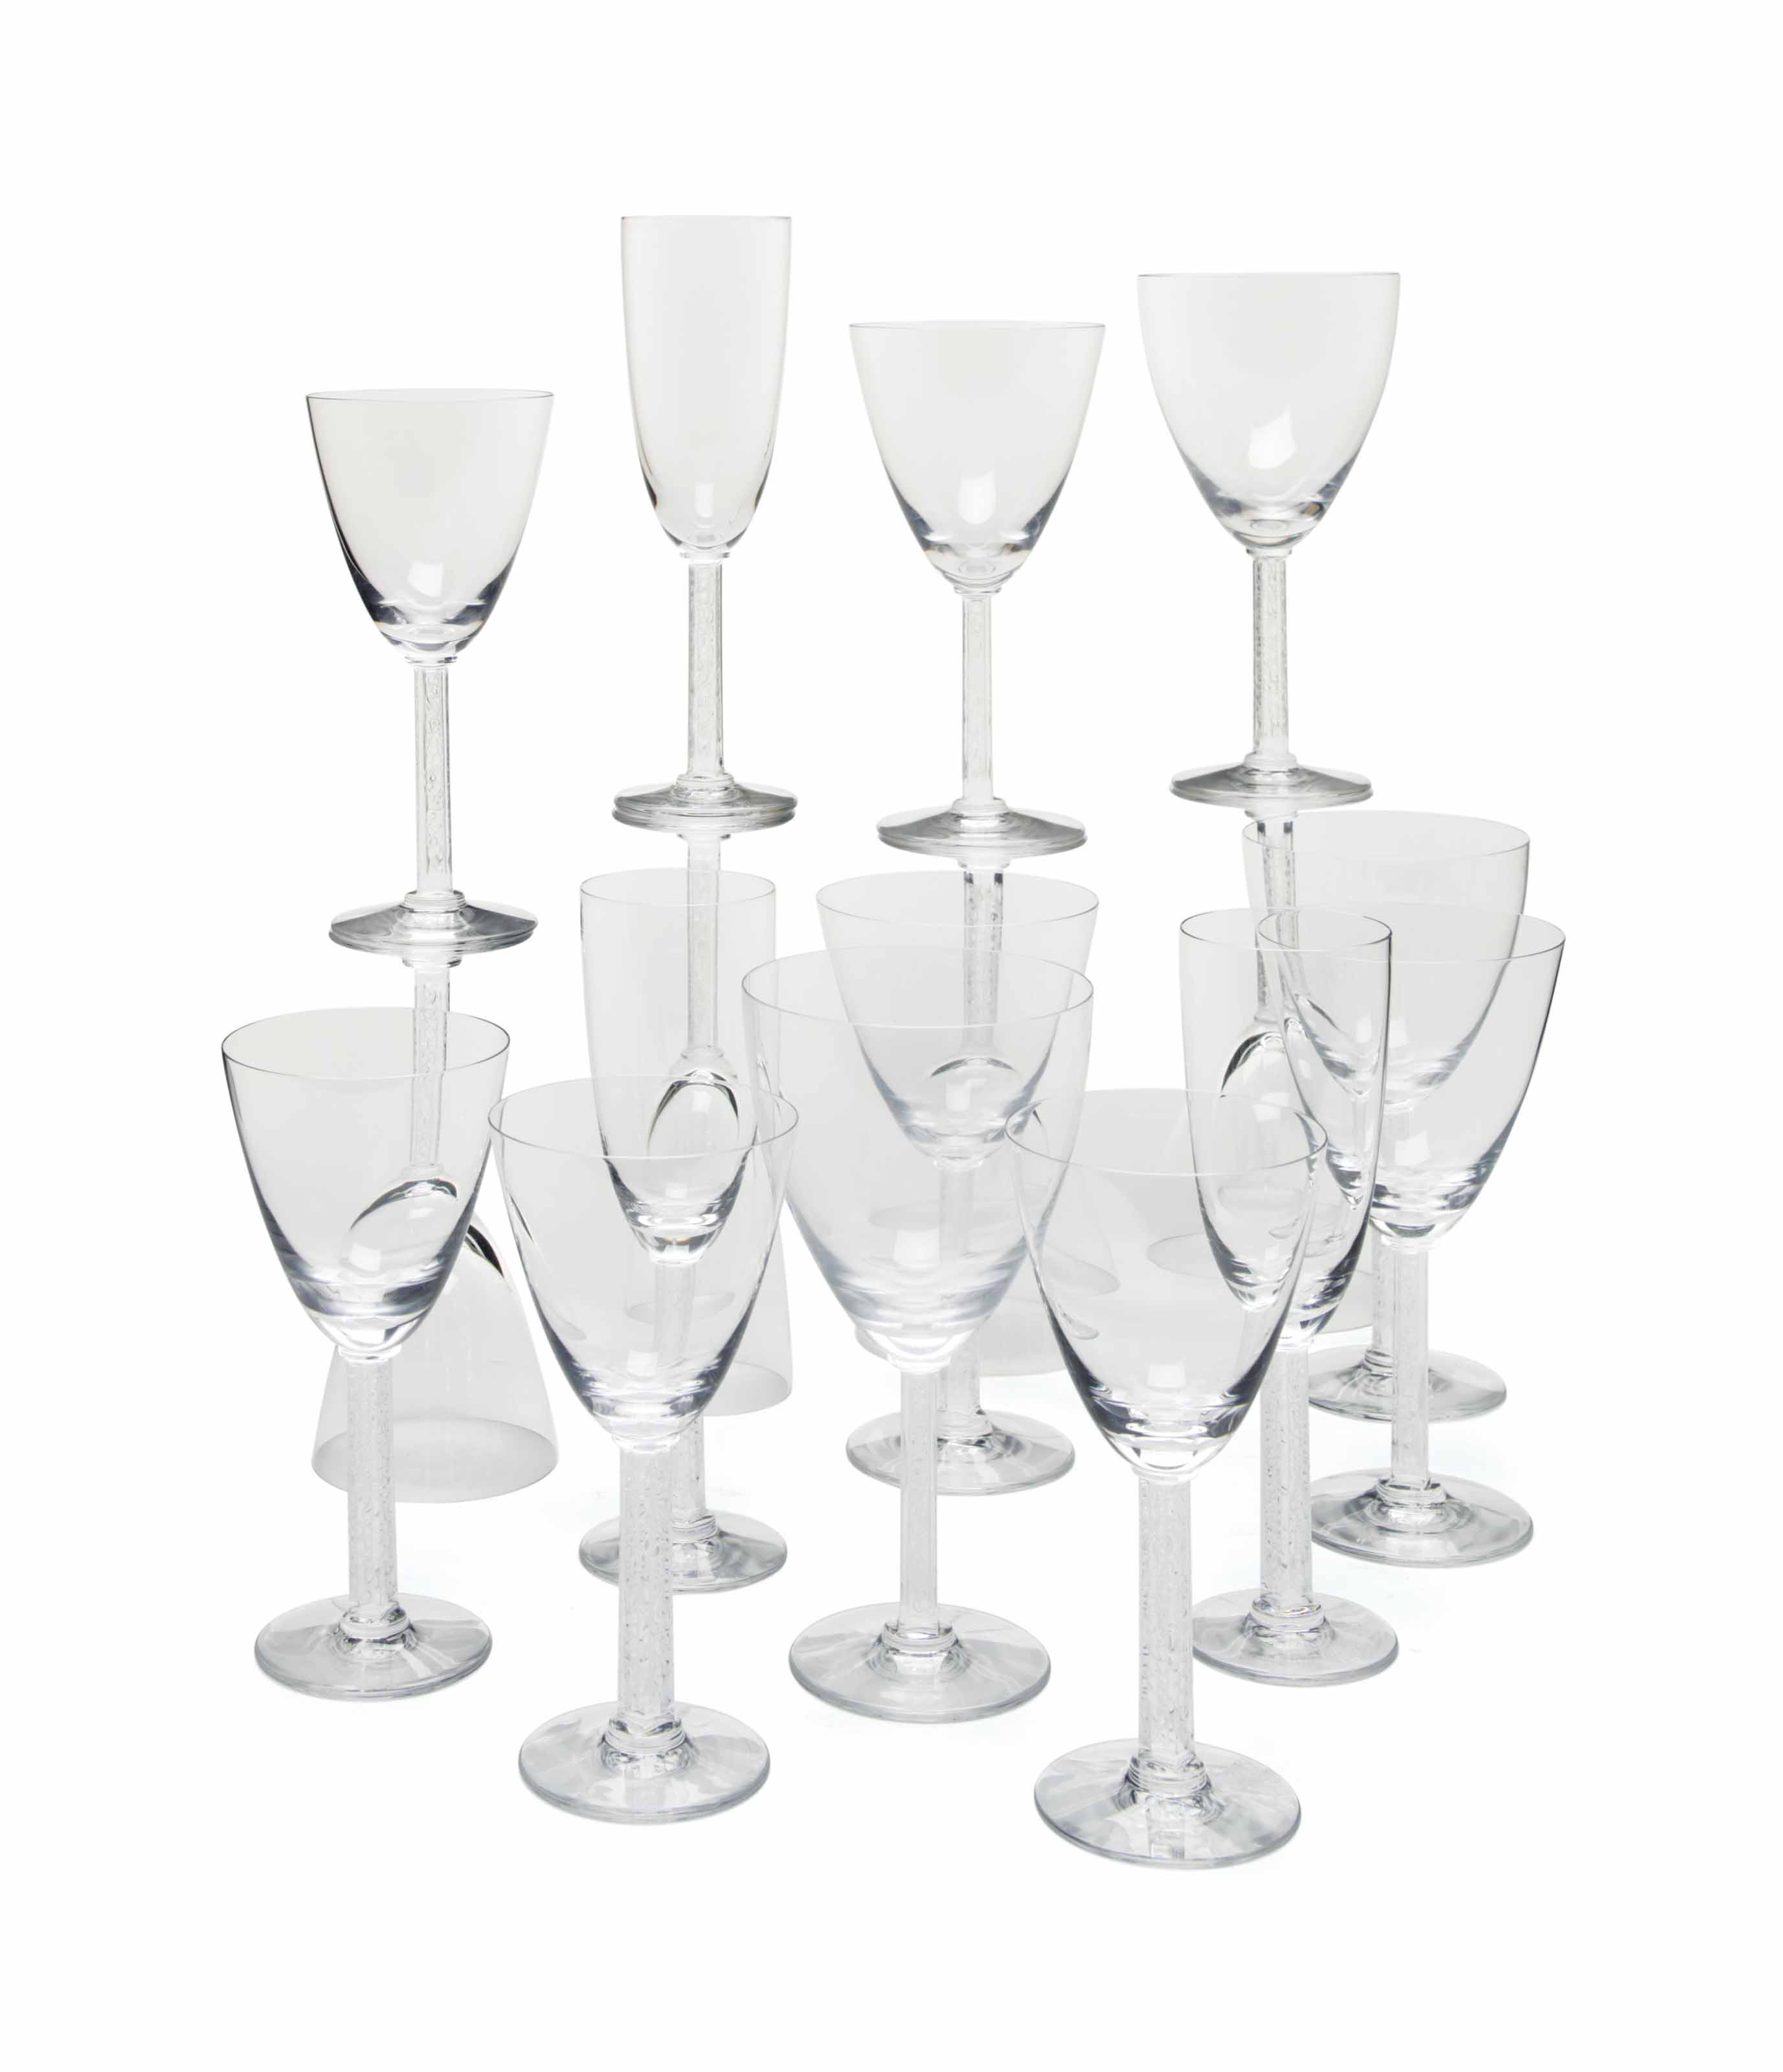 A FRENCH ETCHED AND COLORLESS GLASS PART STEMWARE SERVICE